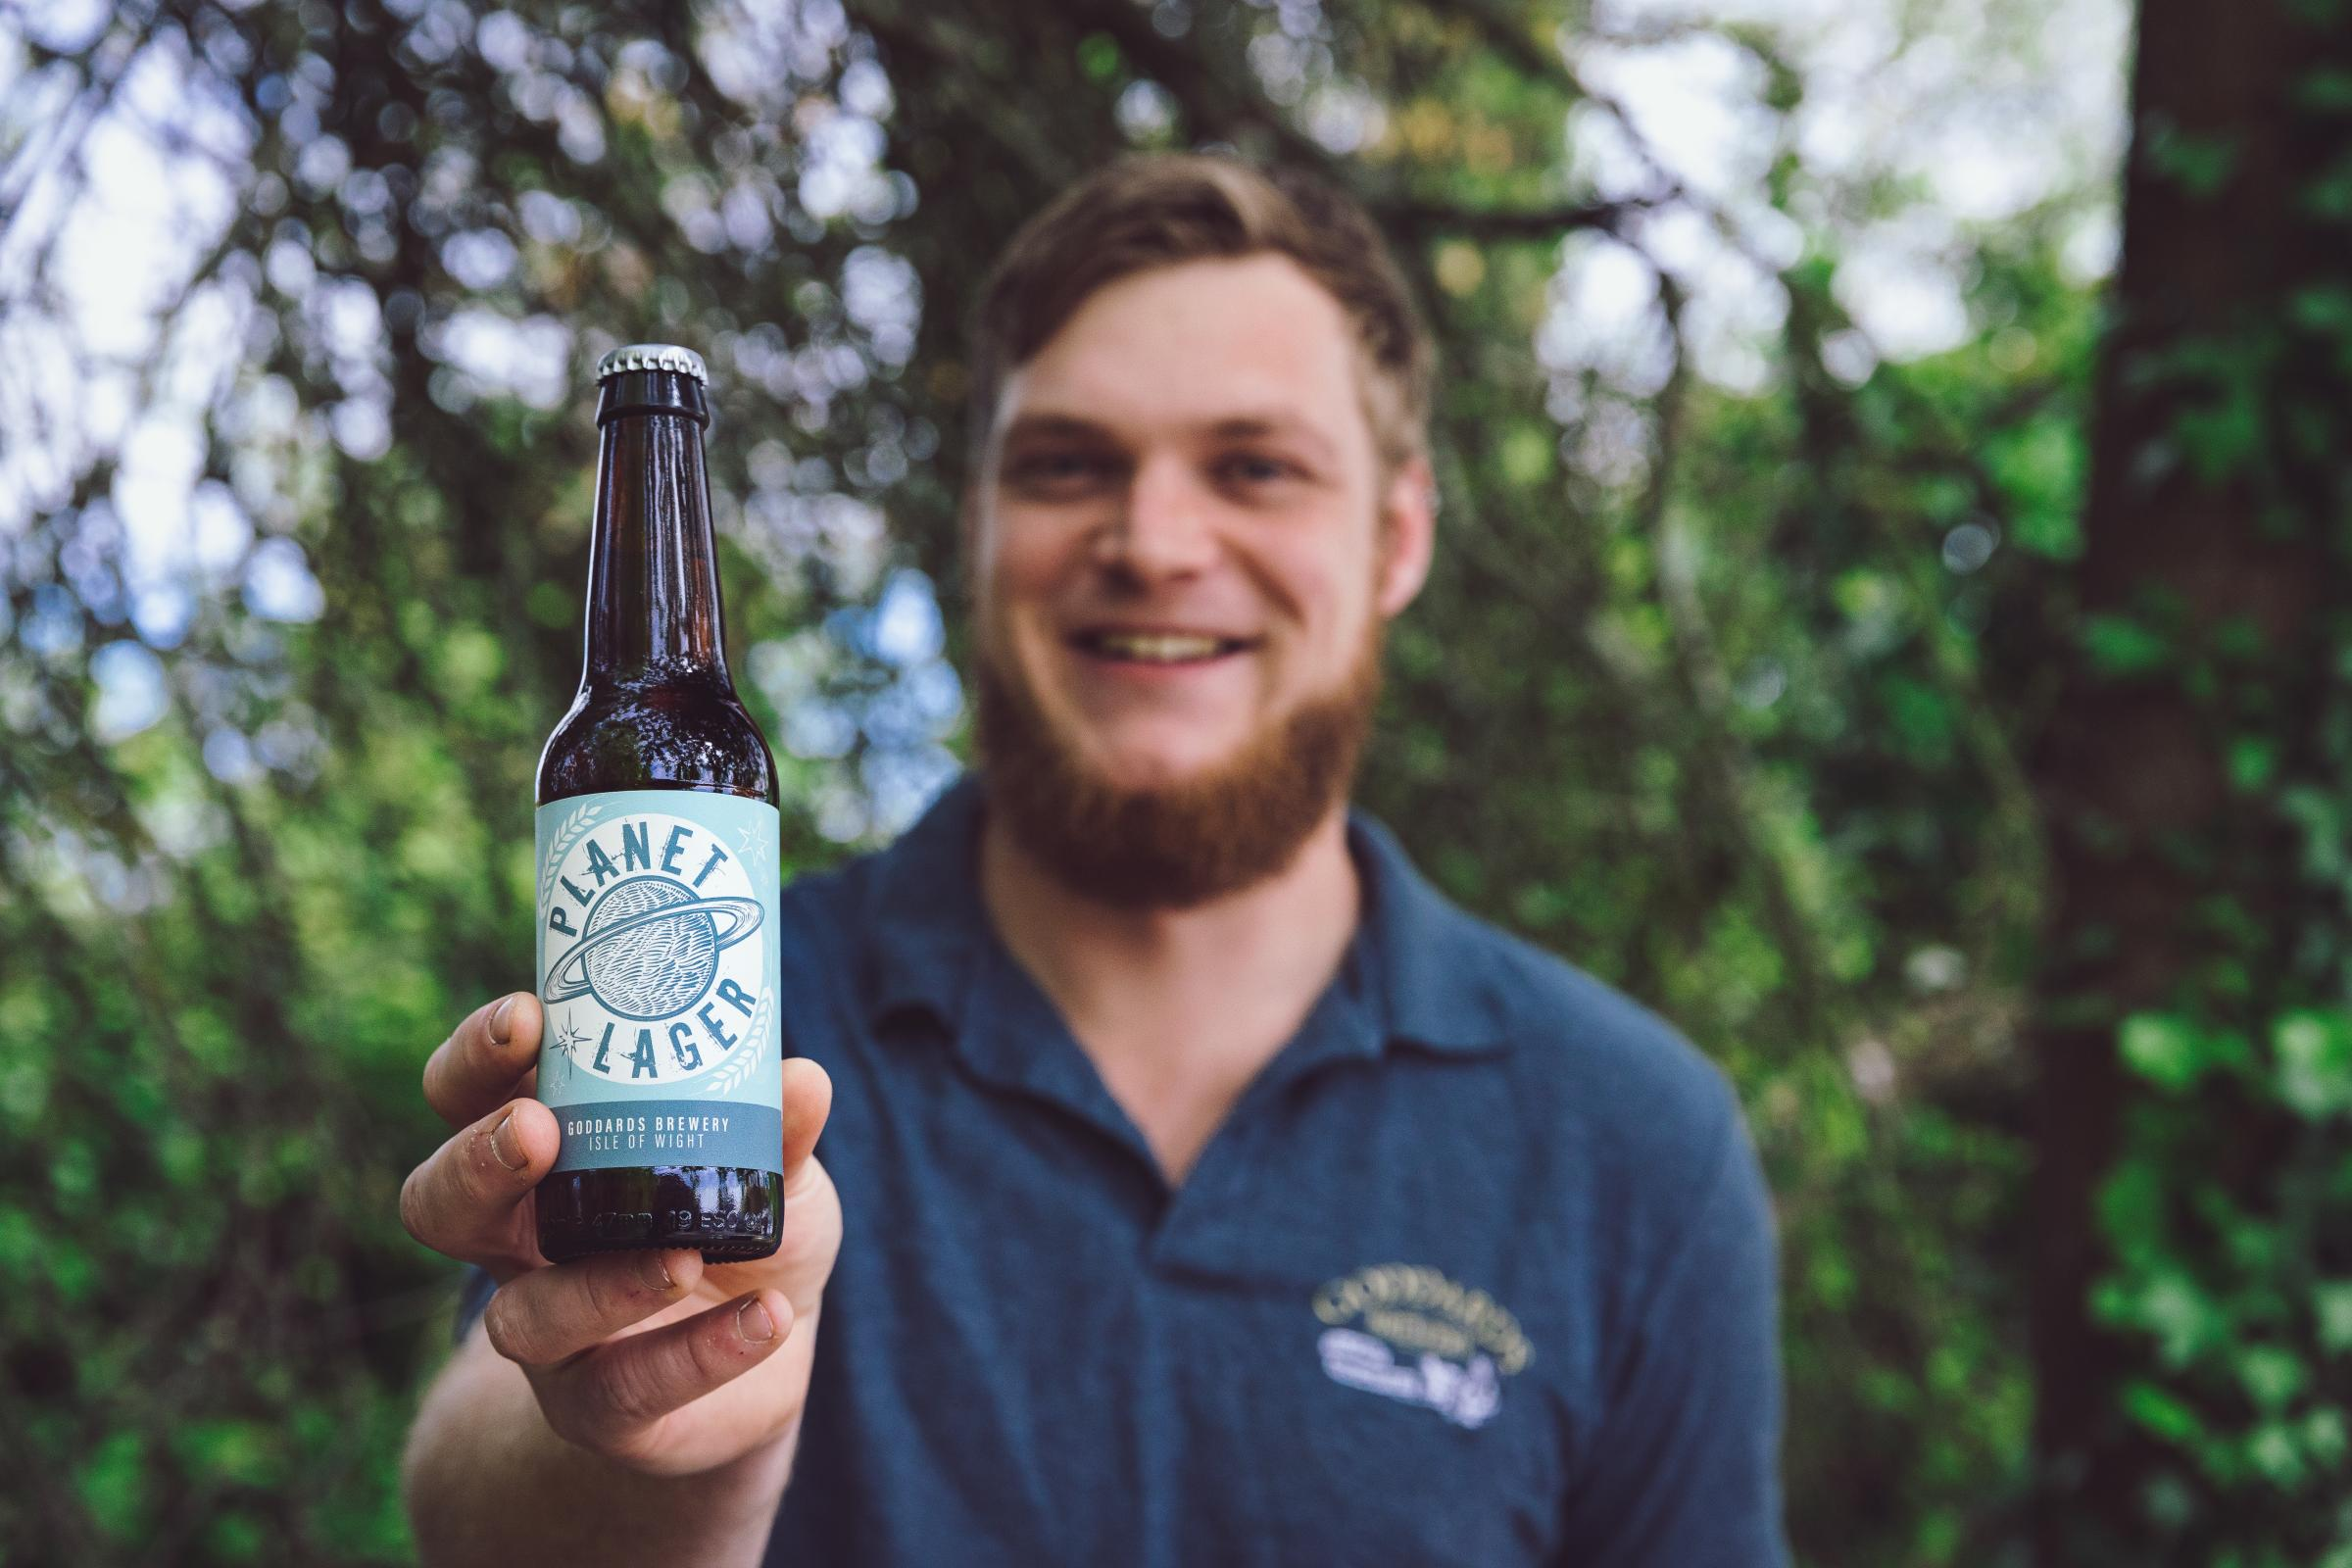 Pint of Planet, anyone? Isle of Wight's Goddards Brewery release new gluten free, vegan friendly lager